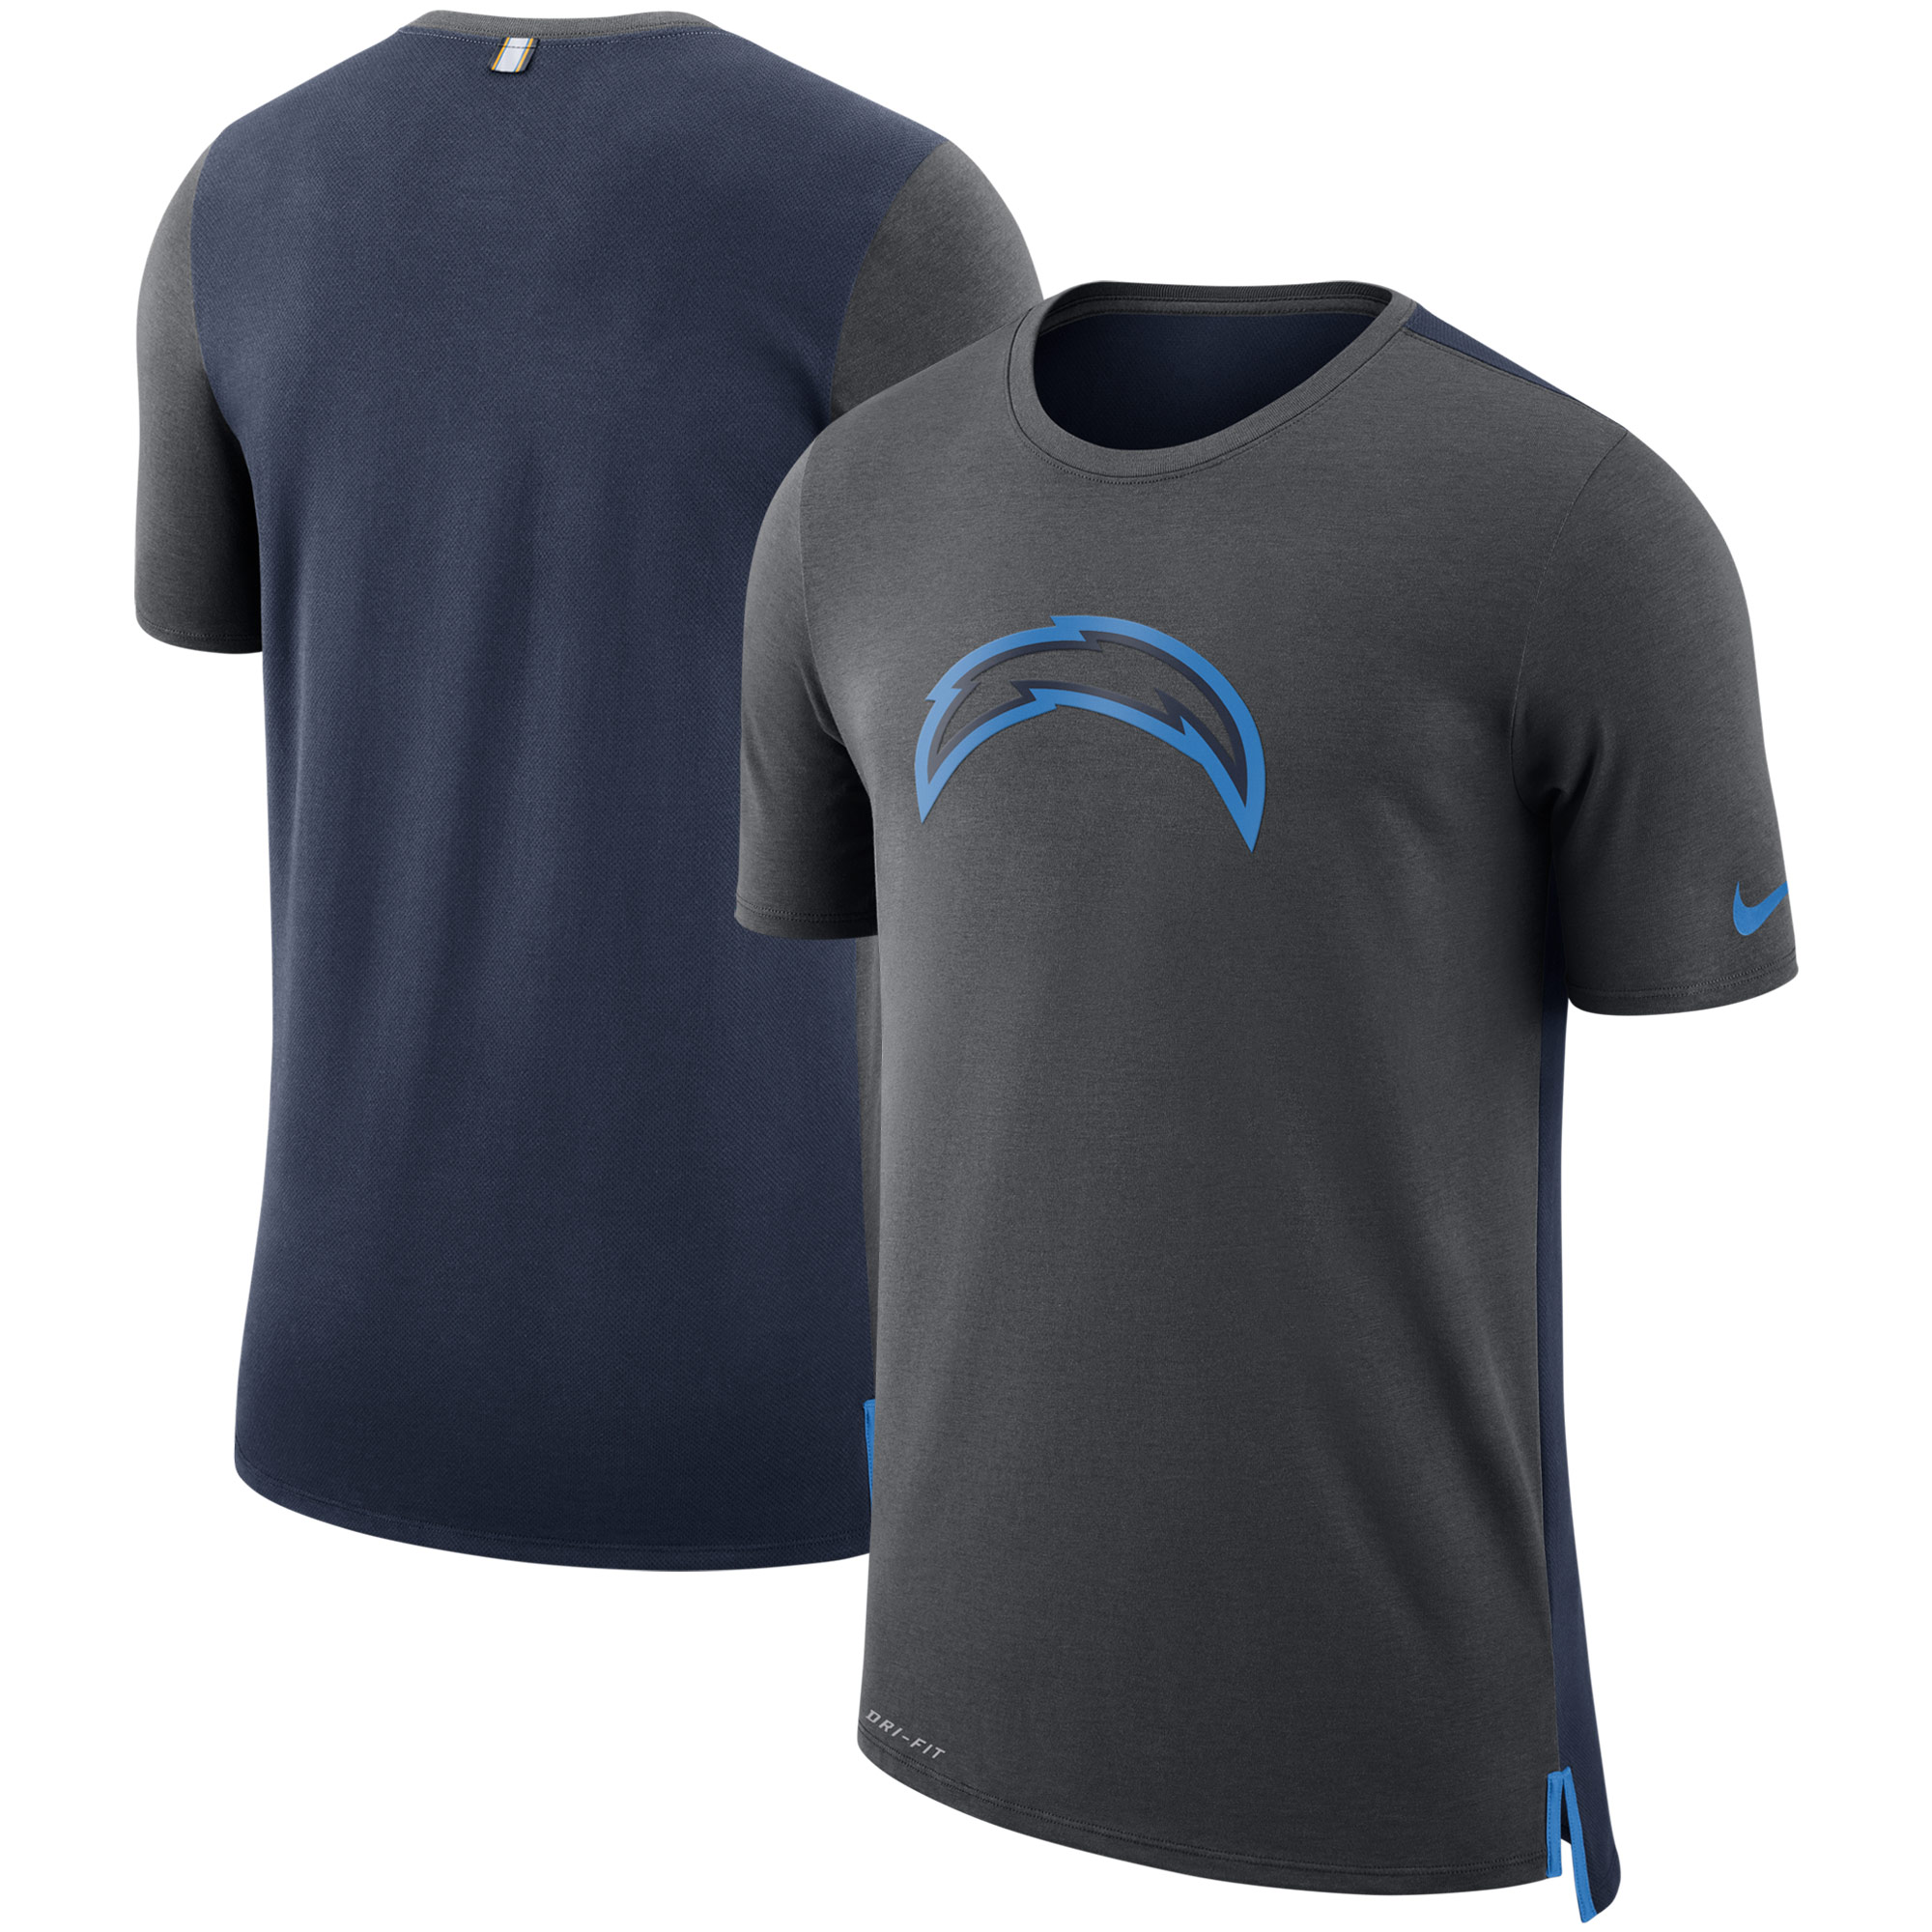 Los Angeles Chargers Nike Sideline Travel Mesh Performance T-Shirt - Charcoal/Navy